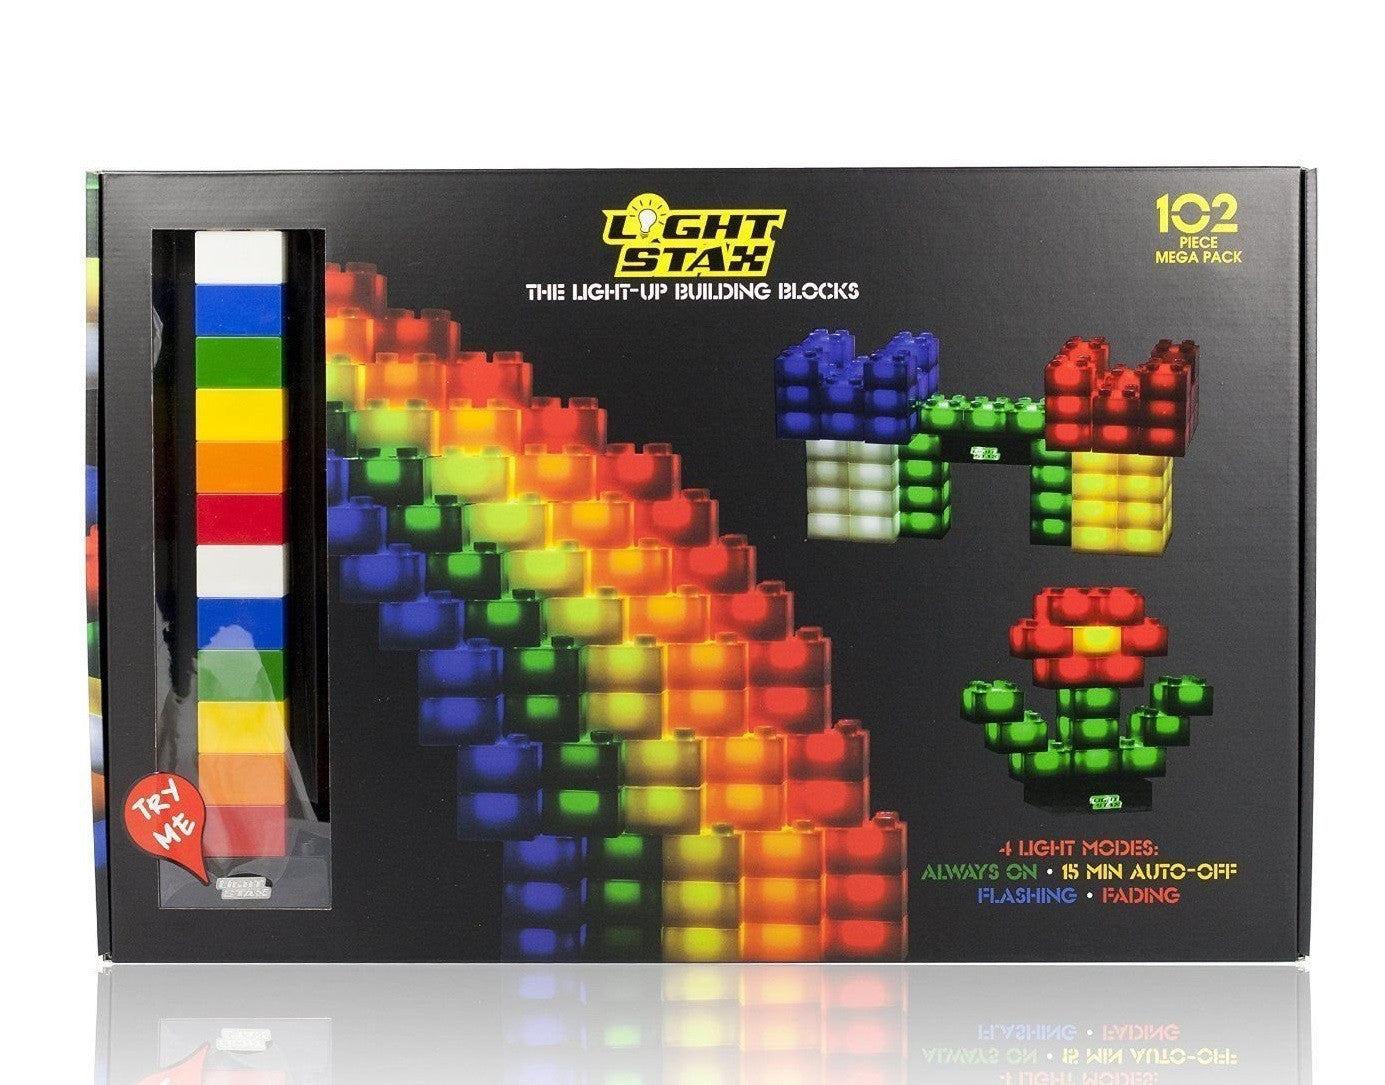 Light Stax Illuminated Blocks Classic Design 102 Pieces - Off The Wall Toys and Gifts